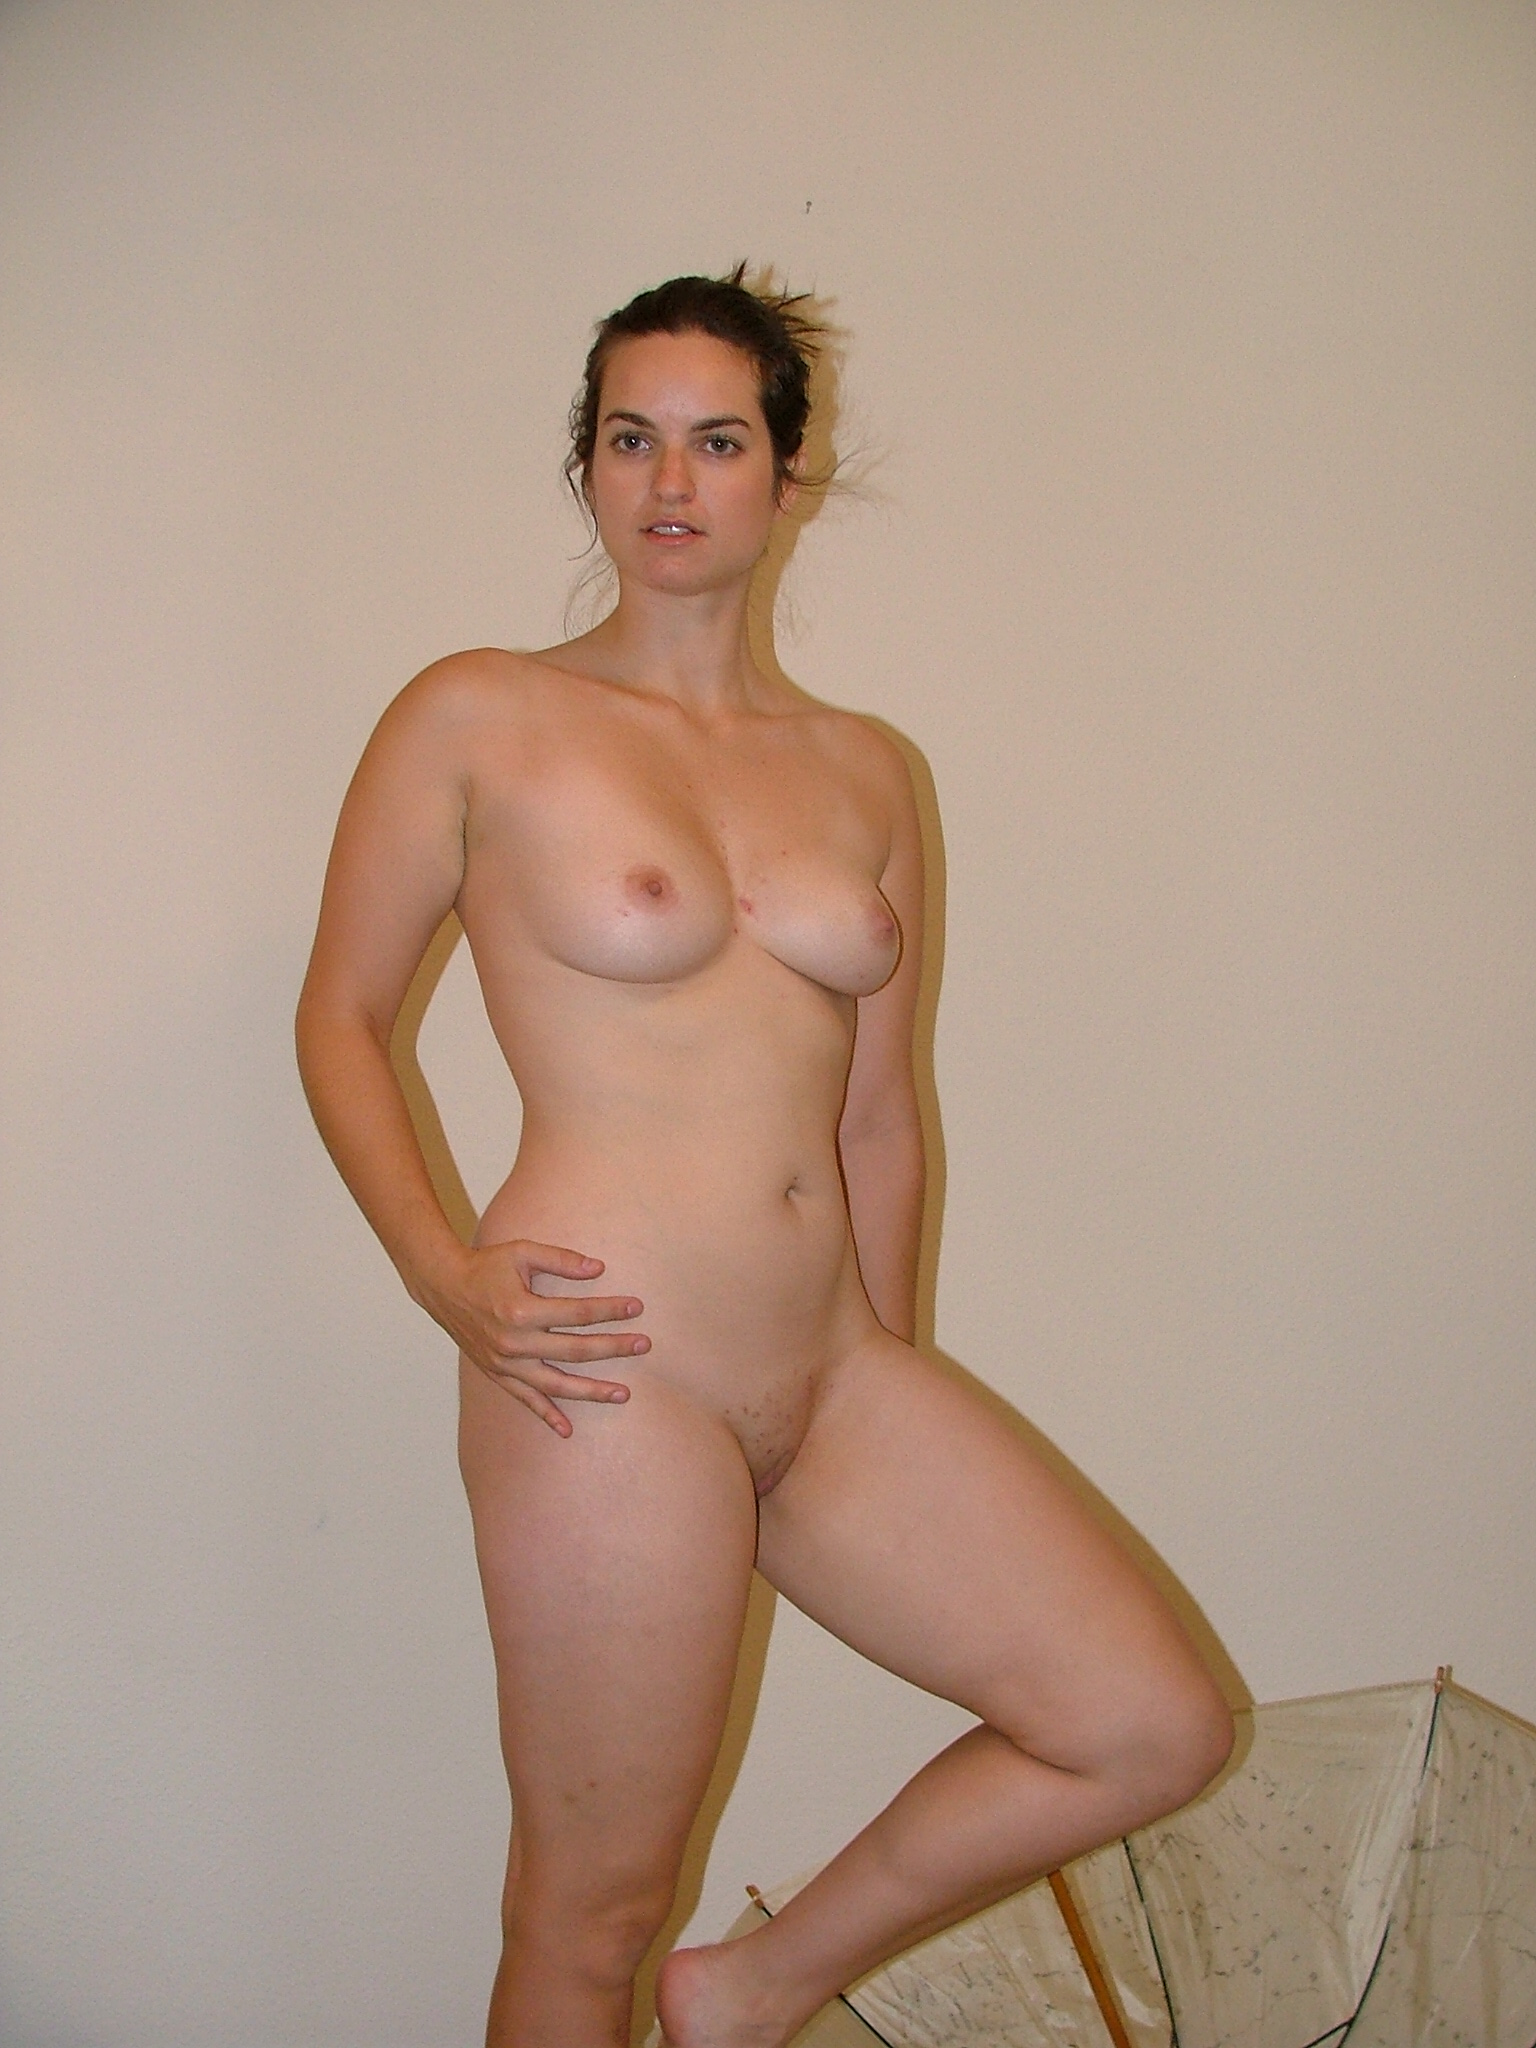 pictures college naked girls thumbnail of